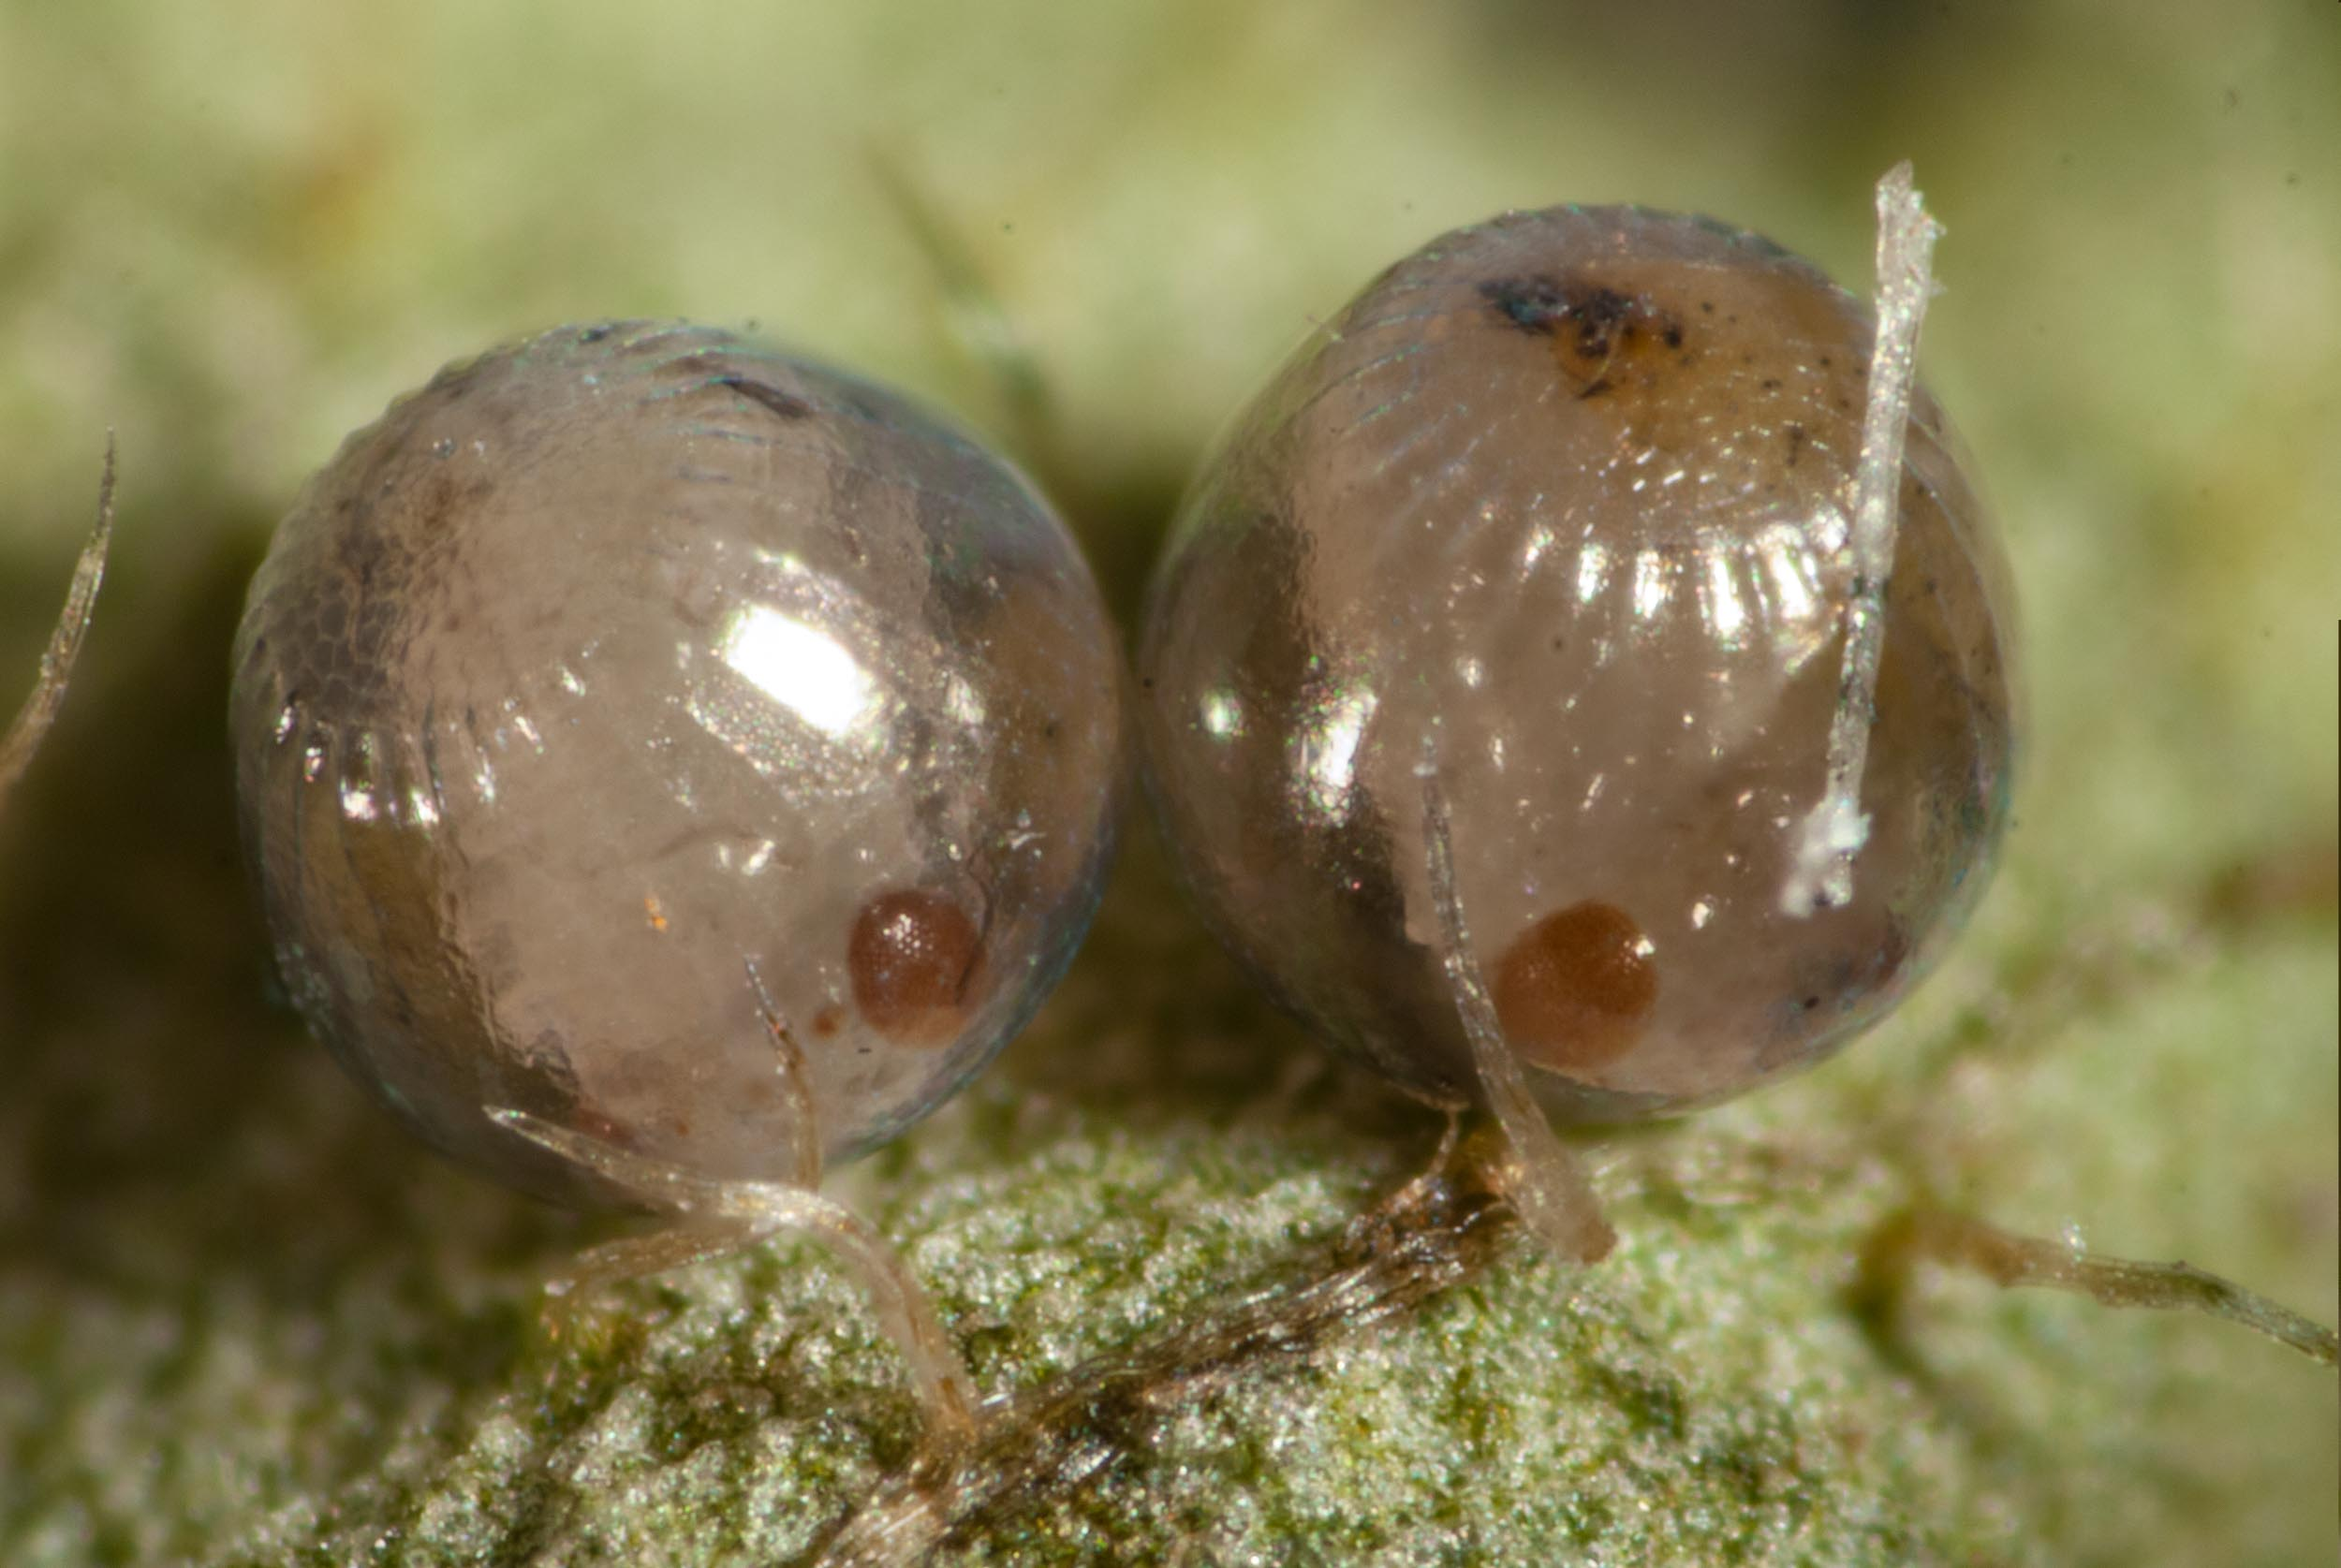 Day 10 - orange-brown compound eyes can be seen on each embryo!